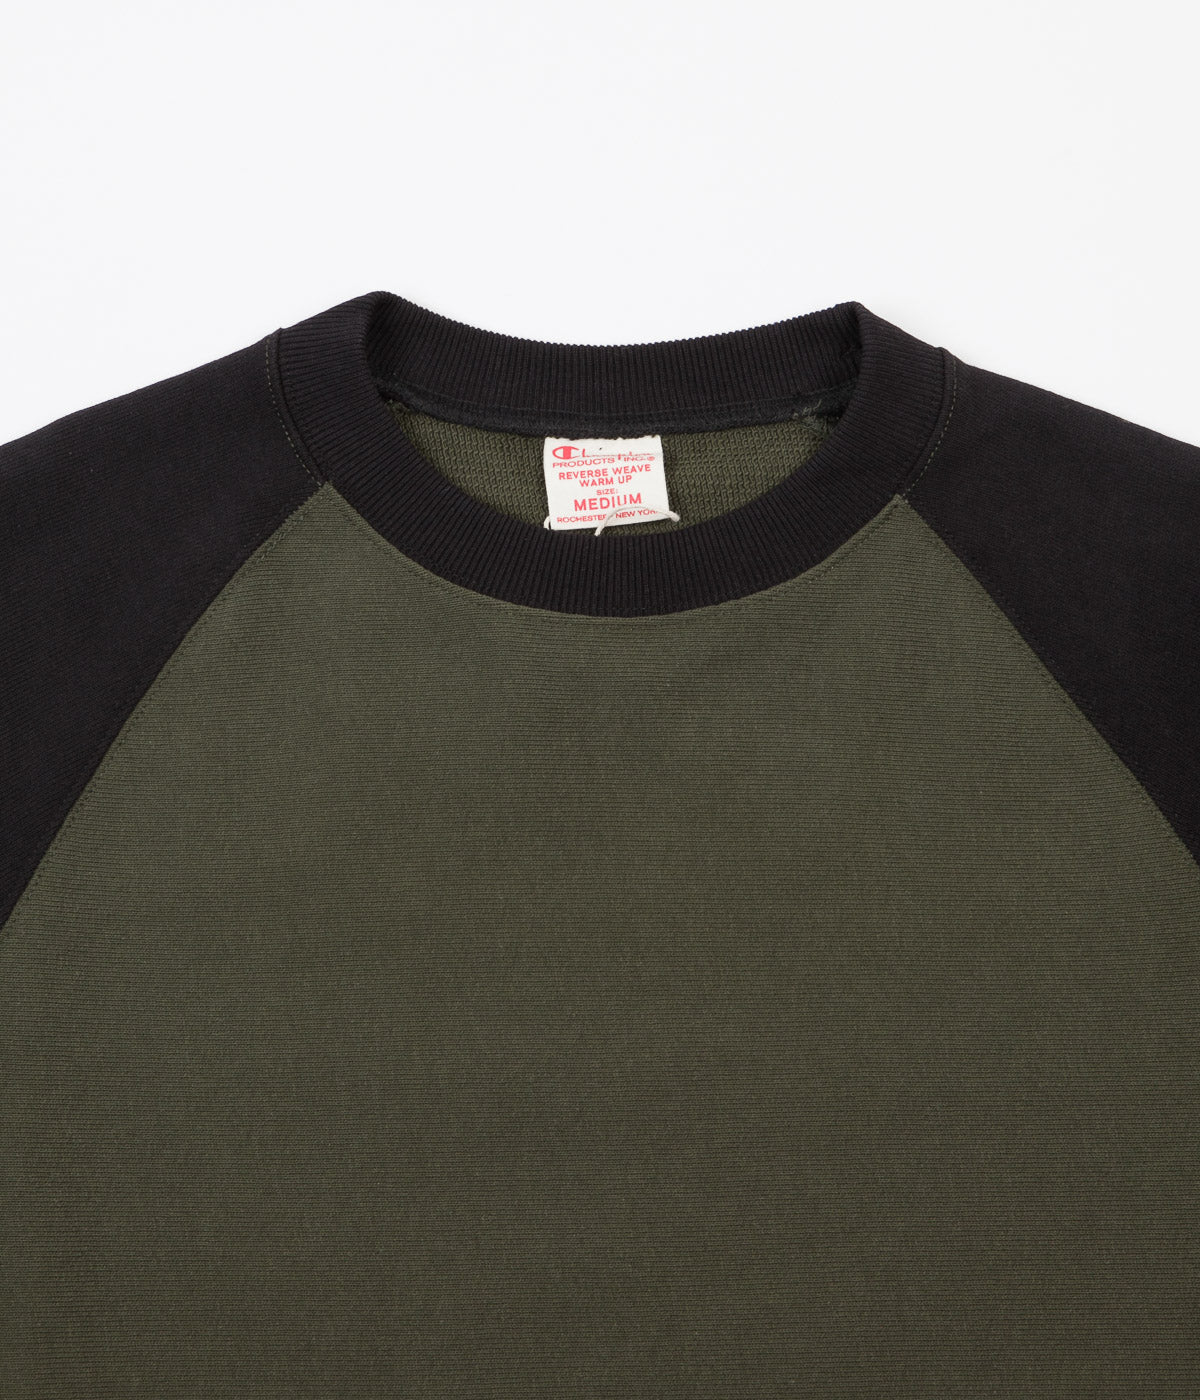 Champion Reverse Weave Two Tone Crewneck Sweatshirt - Olive Green / Navy